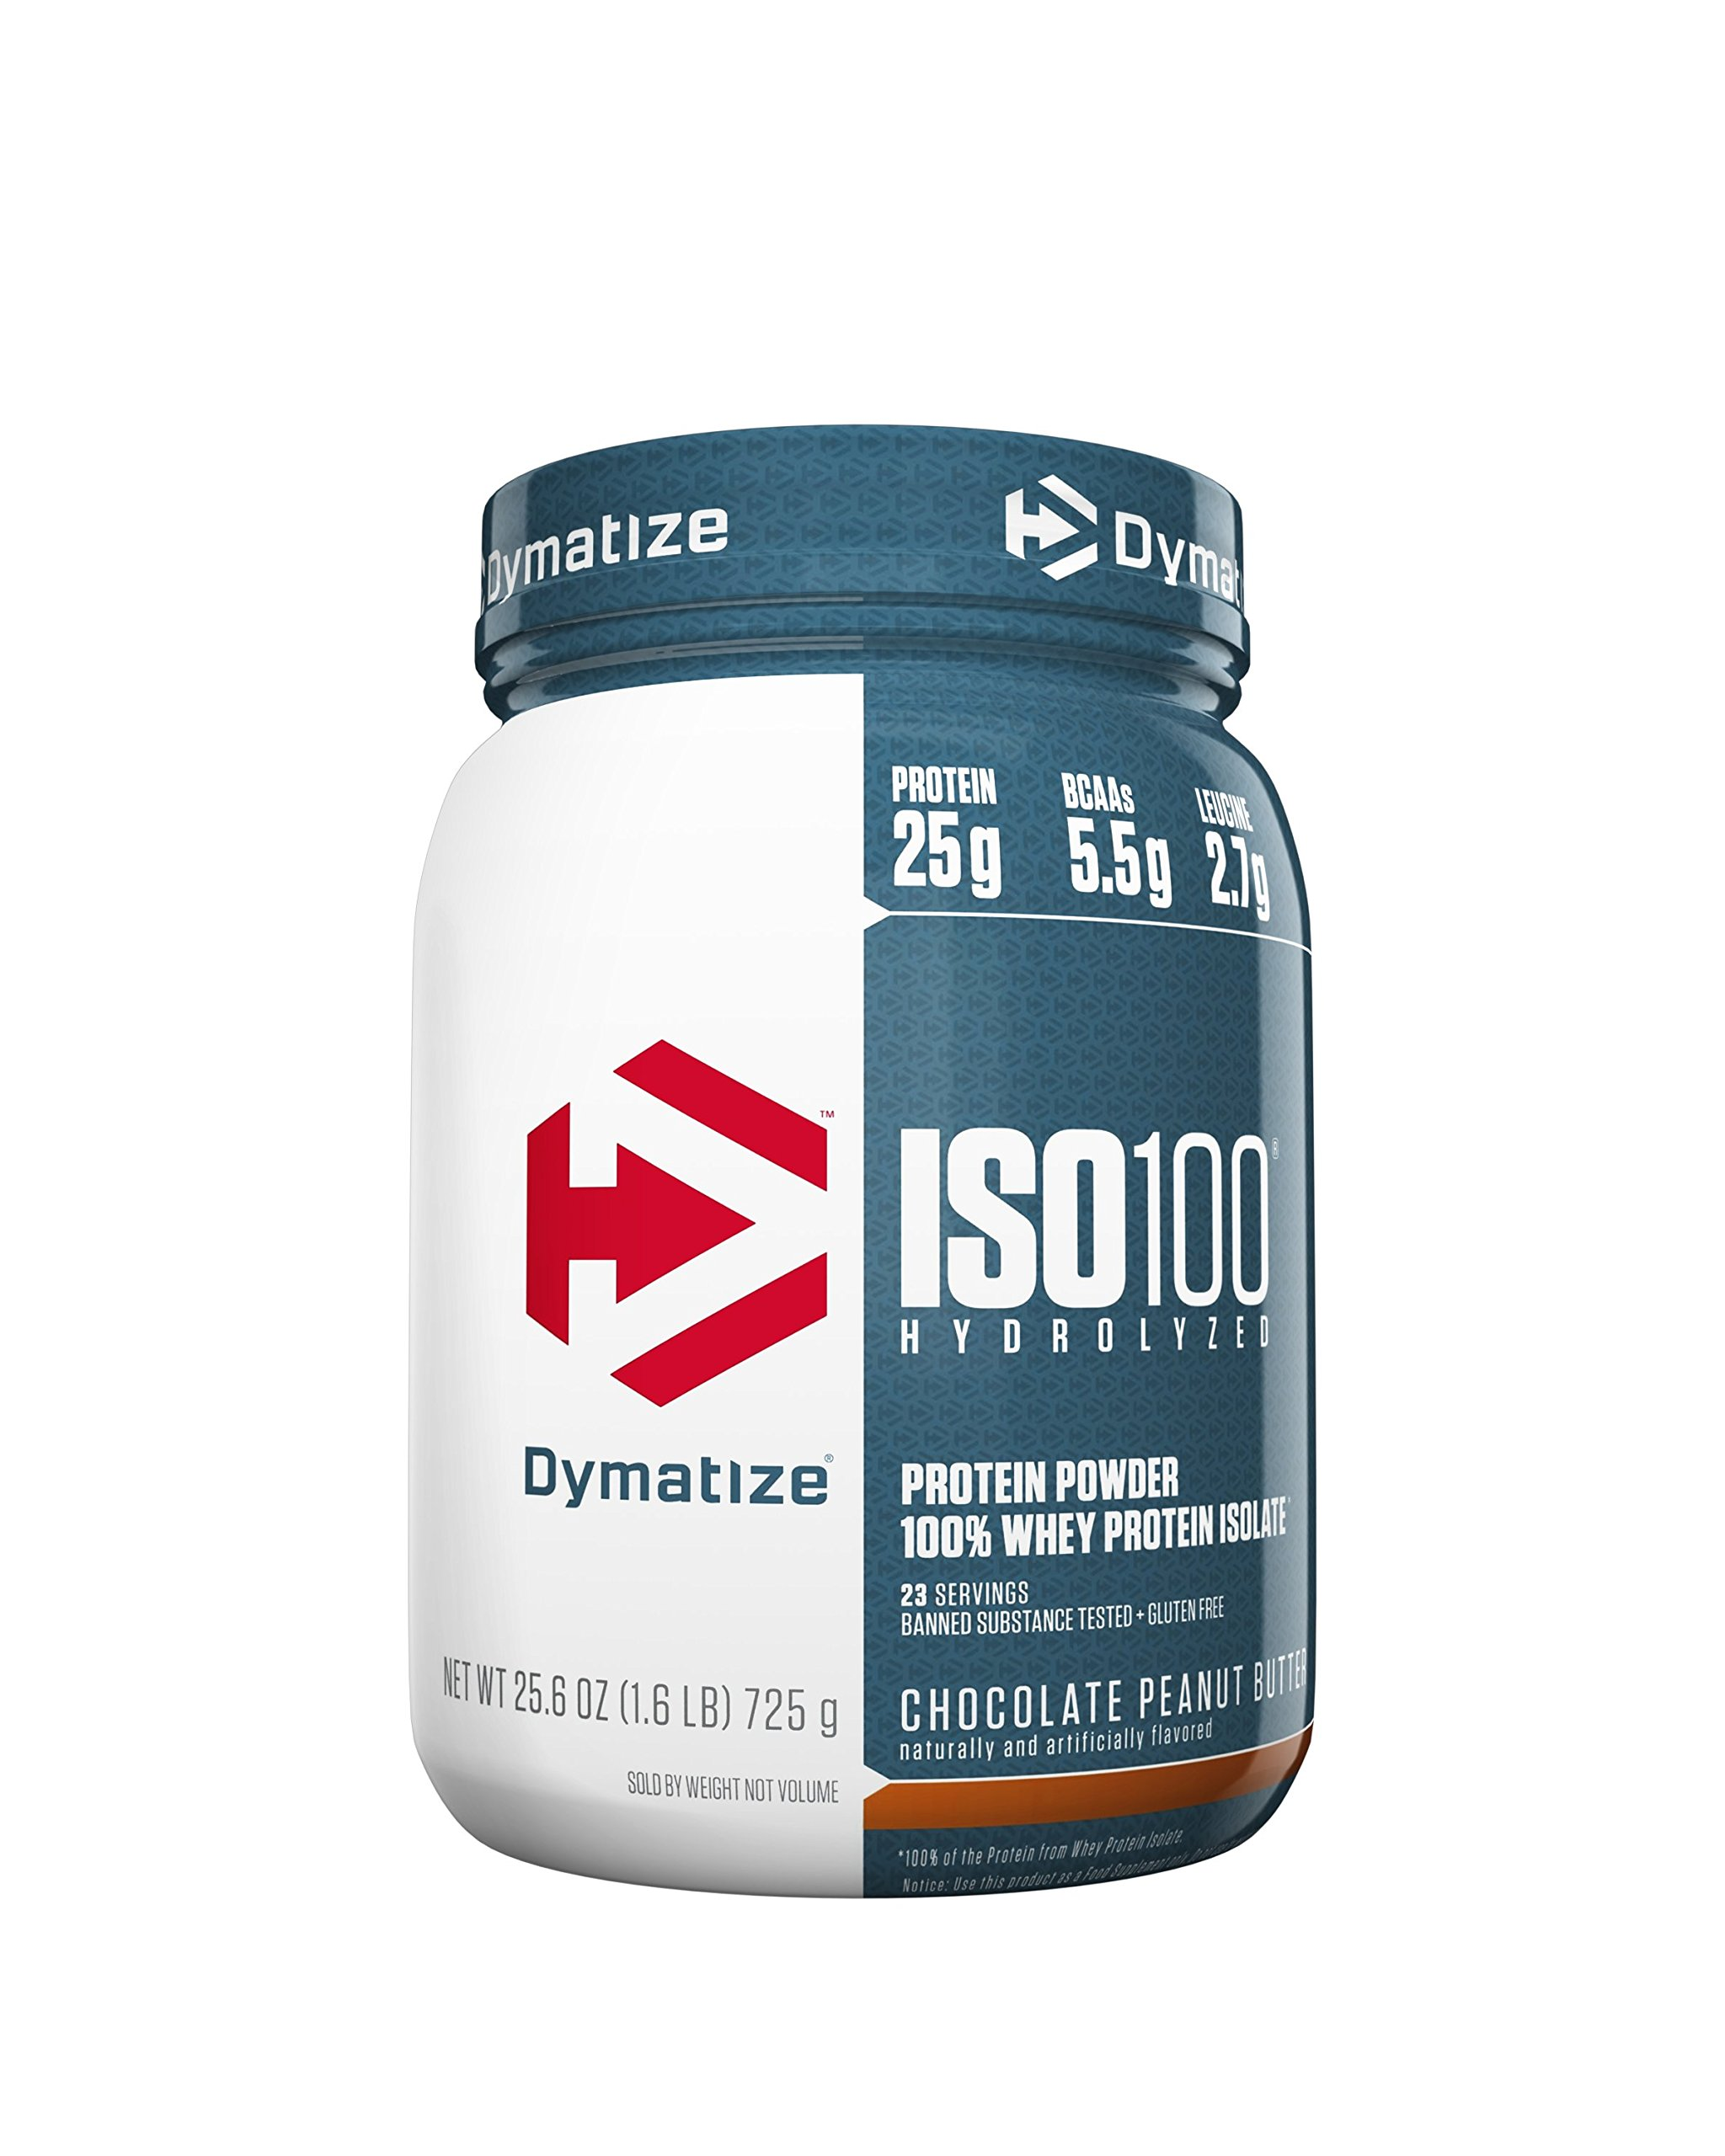 Birthday Cake Protein Powder Dymatize